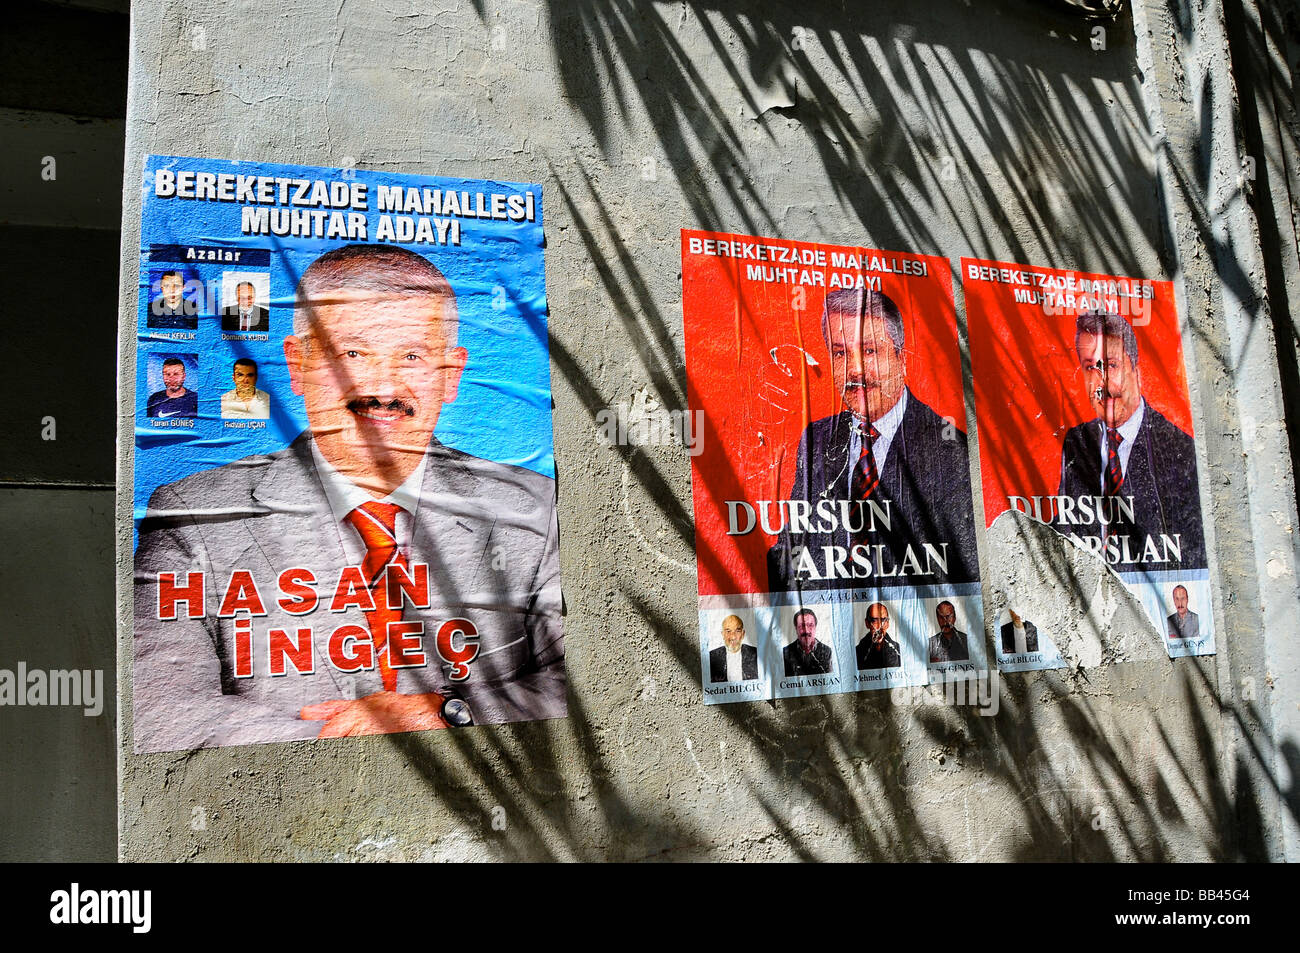 Election posters, Istanbul, Turkey - Stock Image